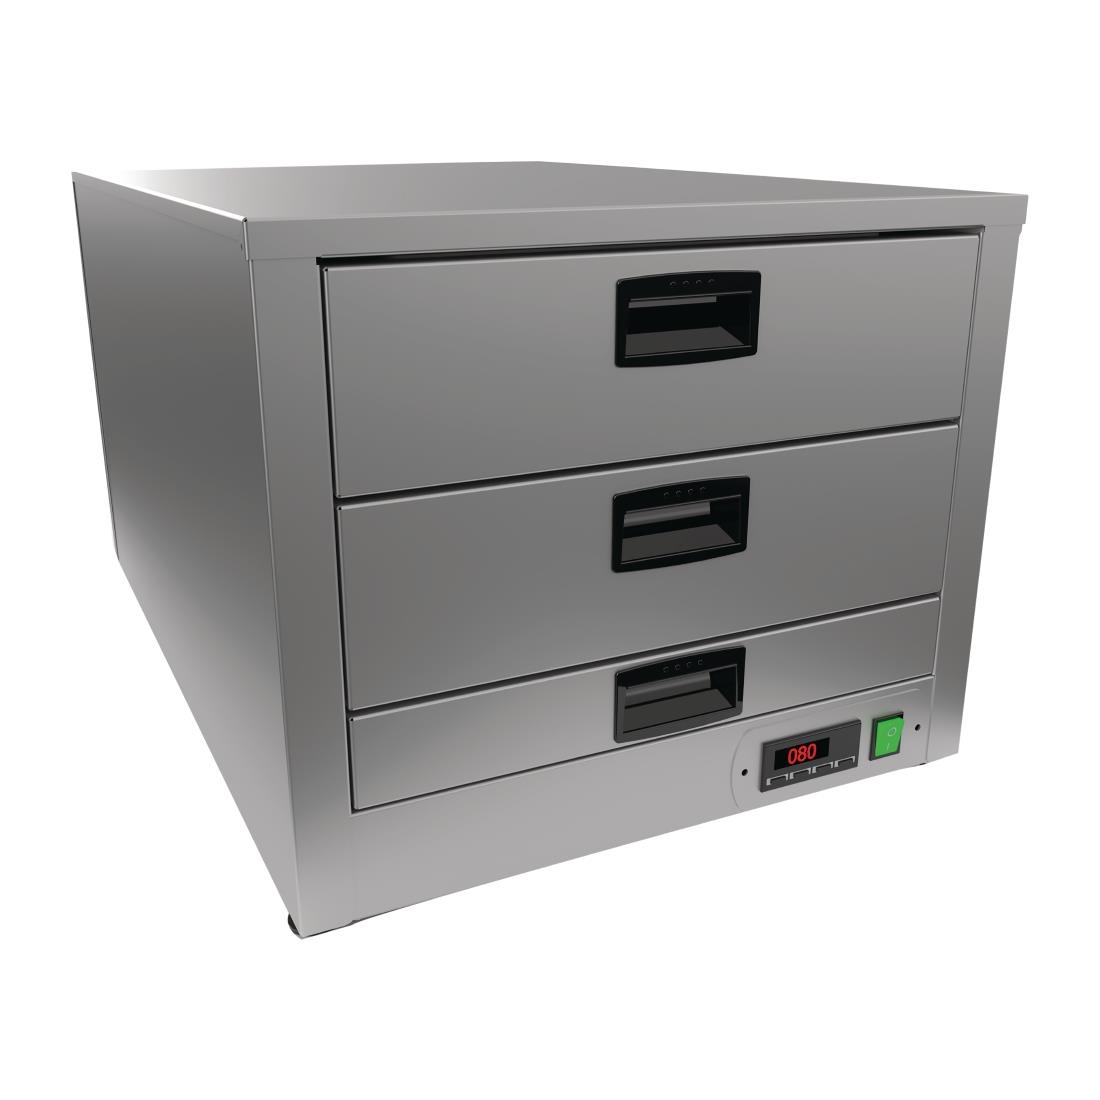 Image of Moffat Fan Assisted Digital Heated Drawers GHD2